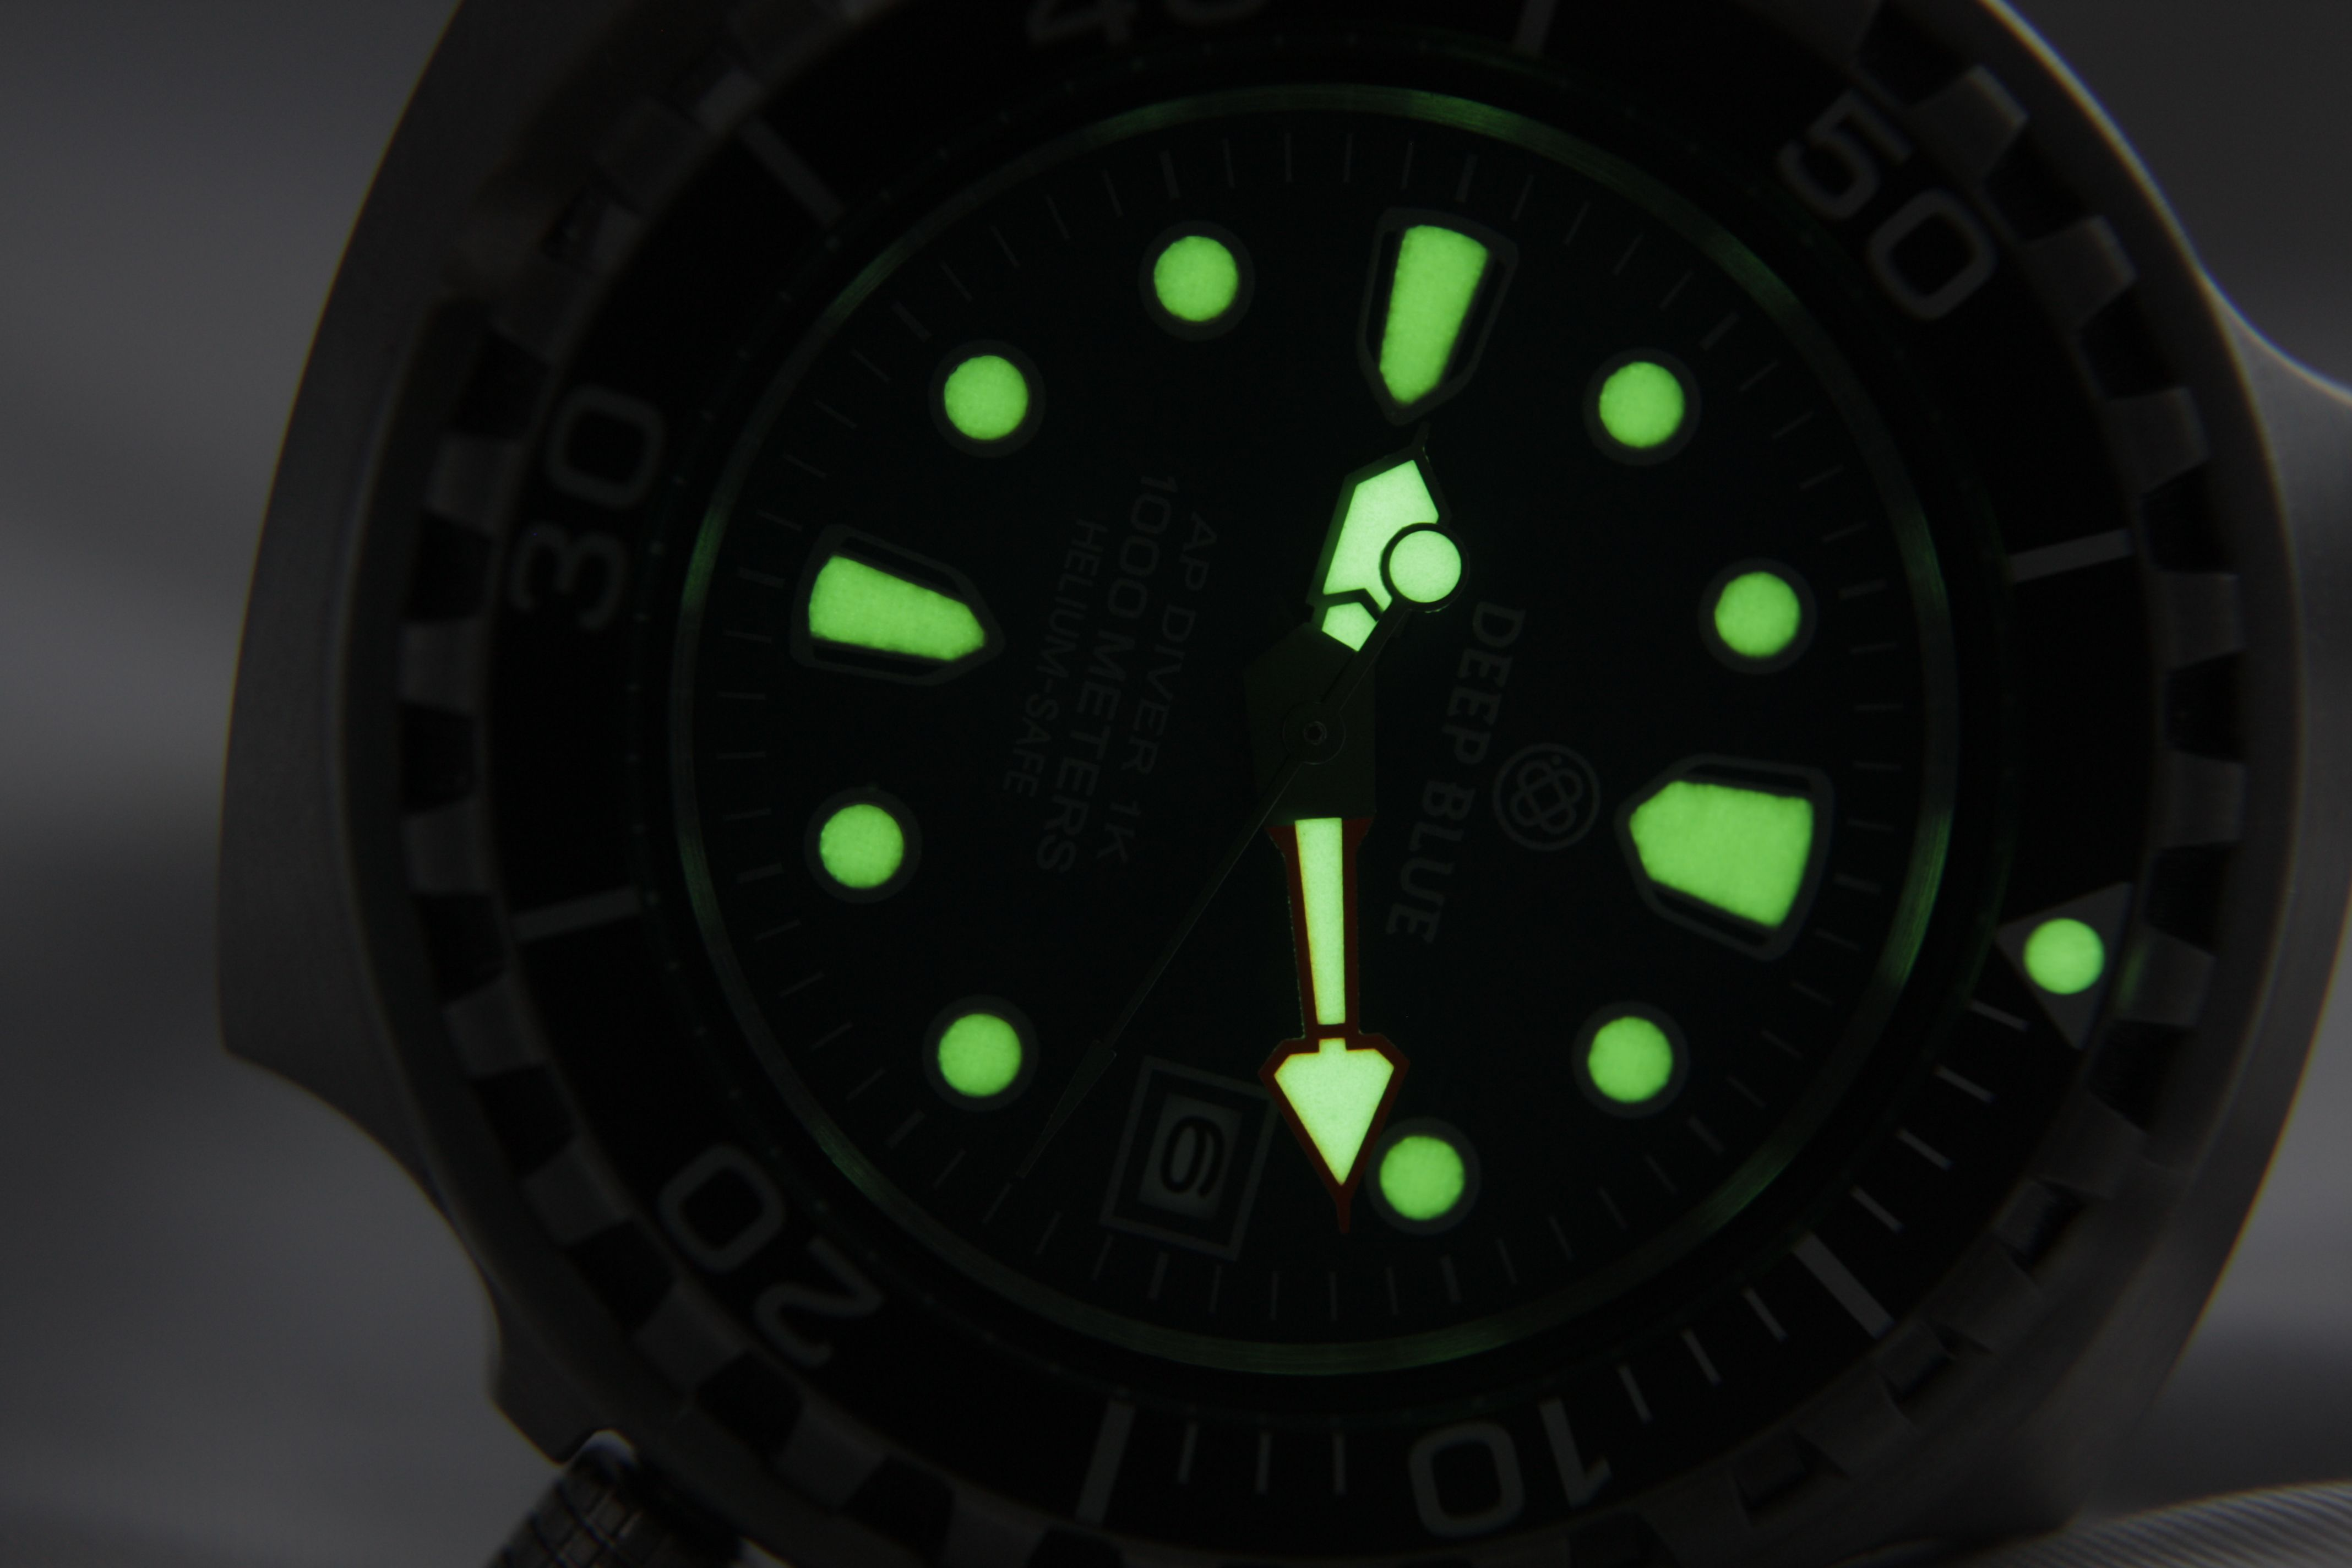 Post your lume shots Mg2205